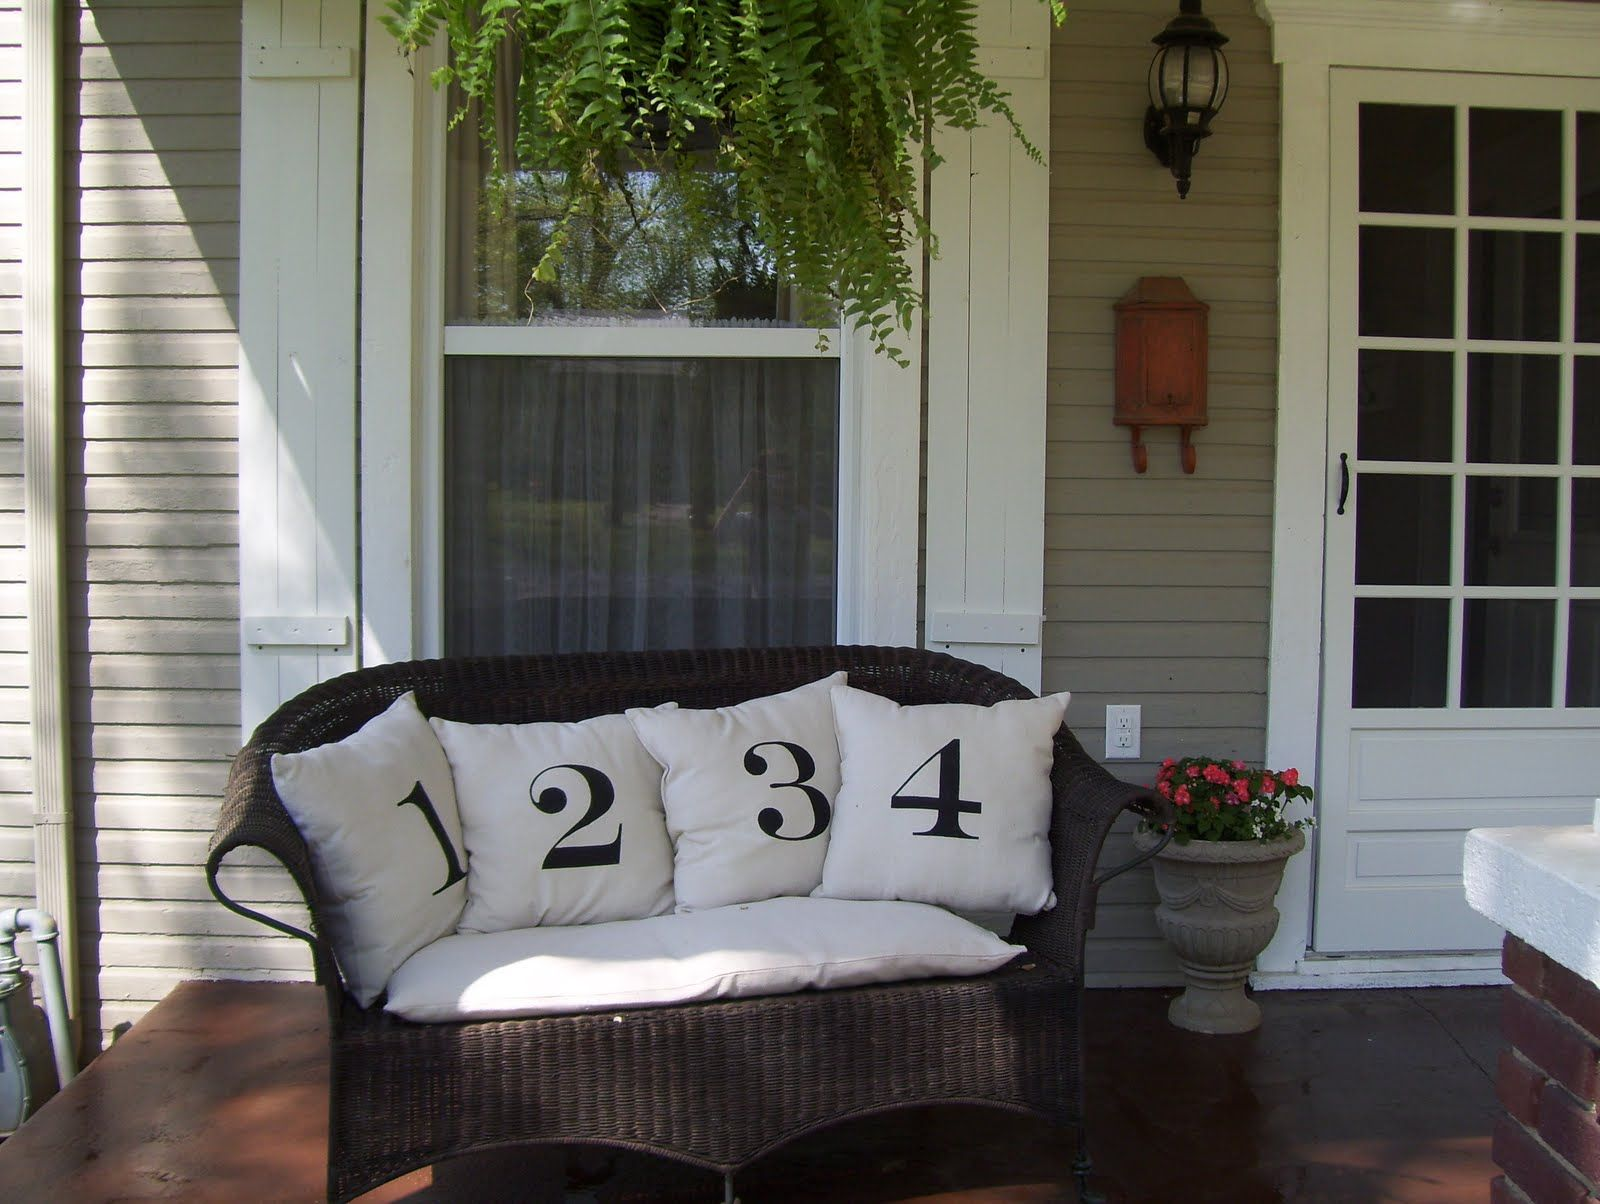 After seeing these numbered pillows in a Pottery Barn catalog, I decided to make them myself by printing the numbers off the computer, creating a stencil with freezer paper and painting the numbers on the fabric. Fun and free! #sideporch